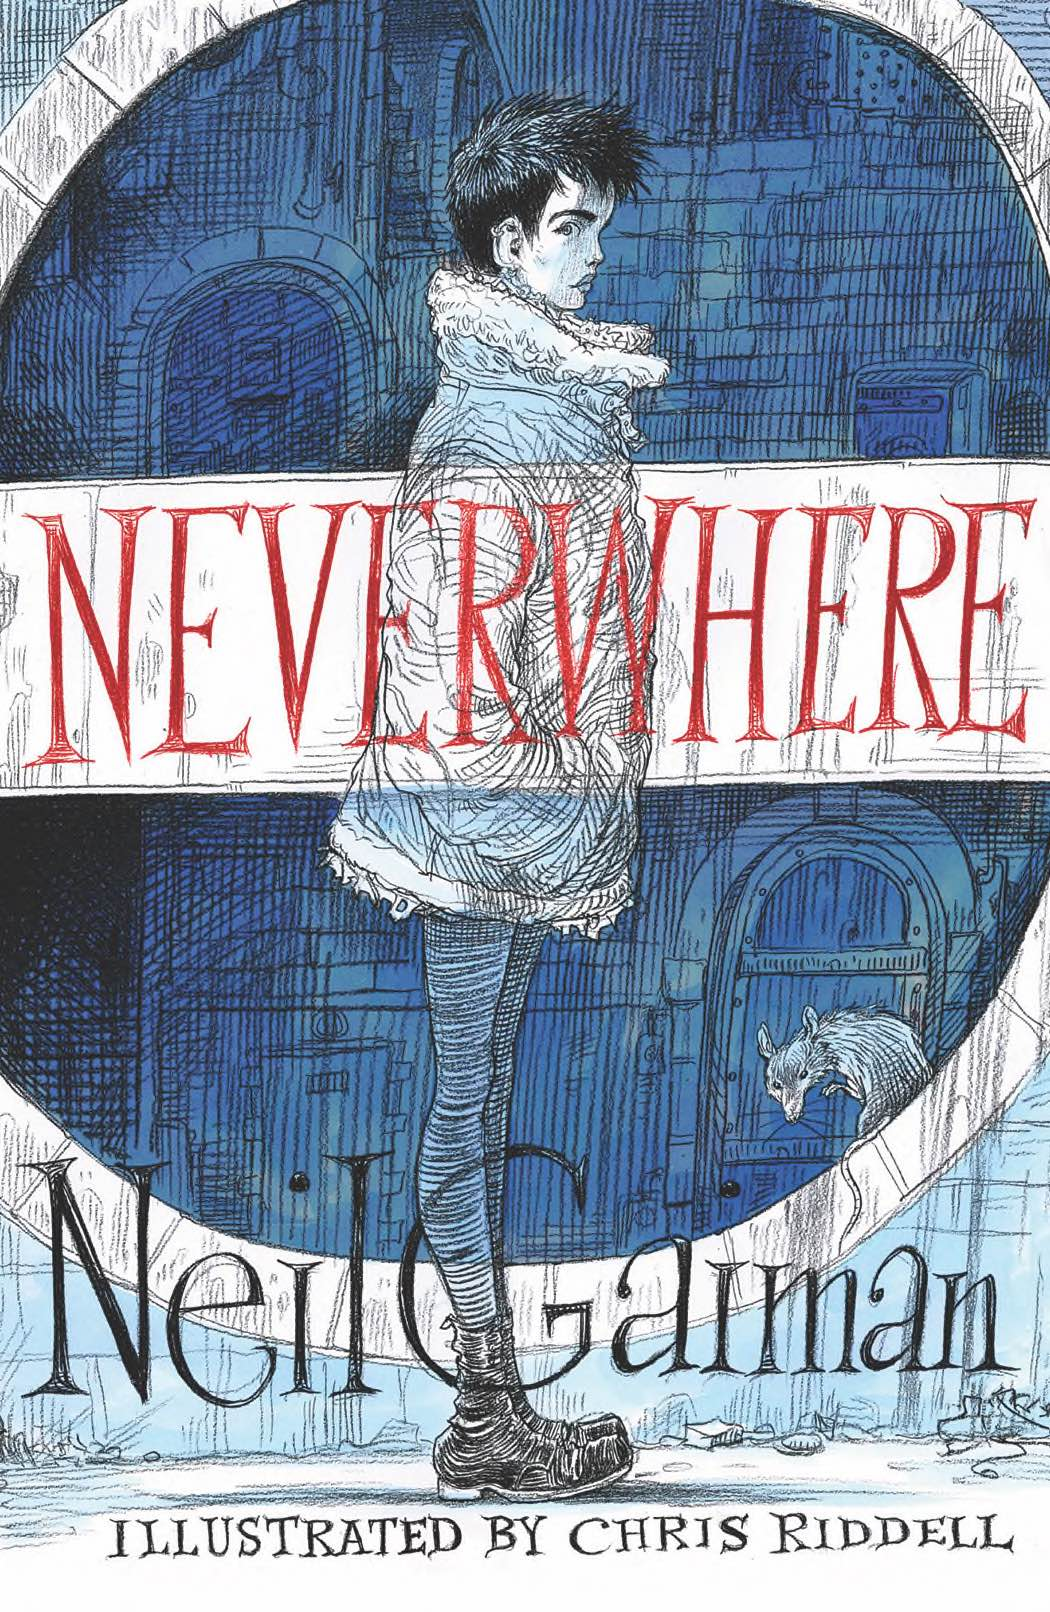 NEVERWHERE Illustrated - jacket image smallish.jpg